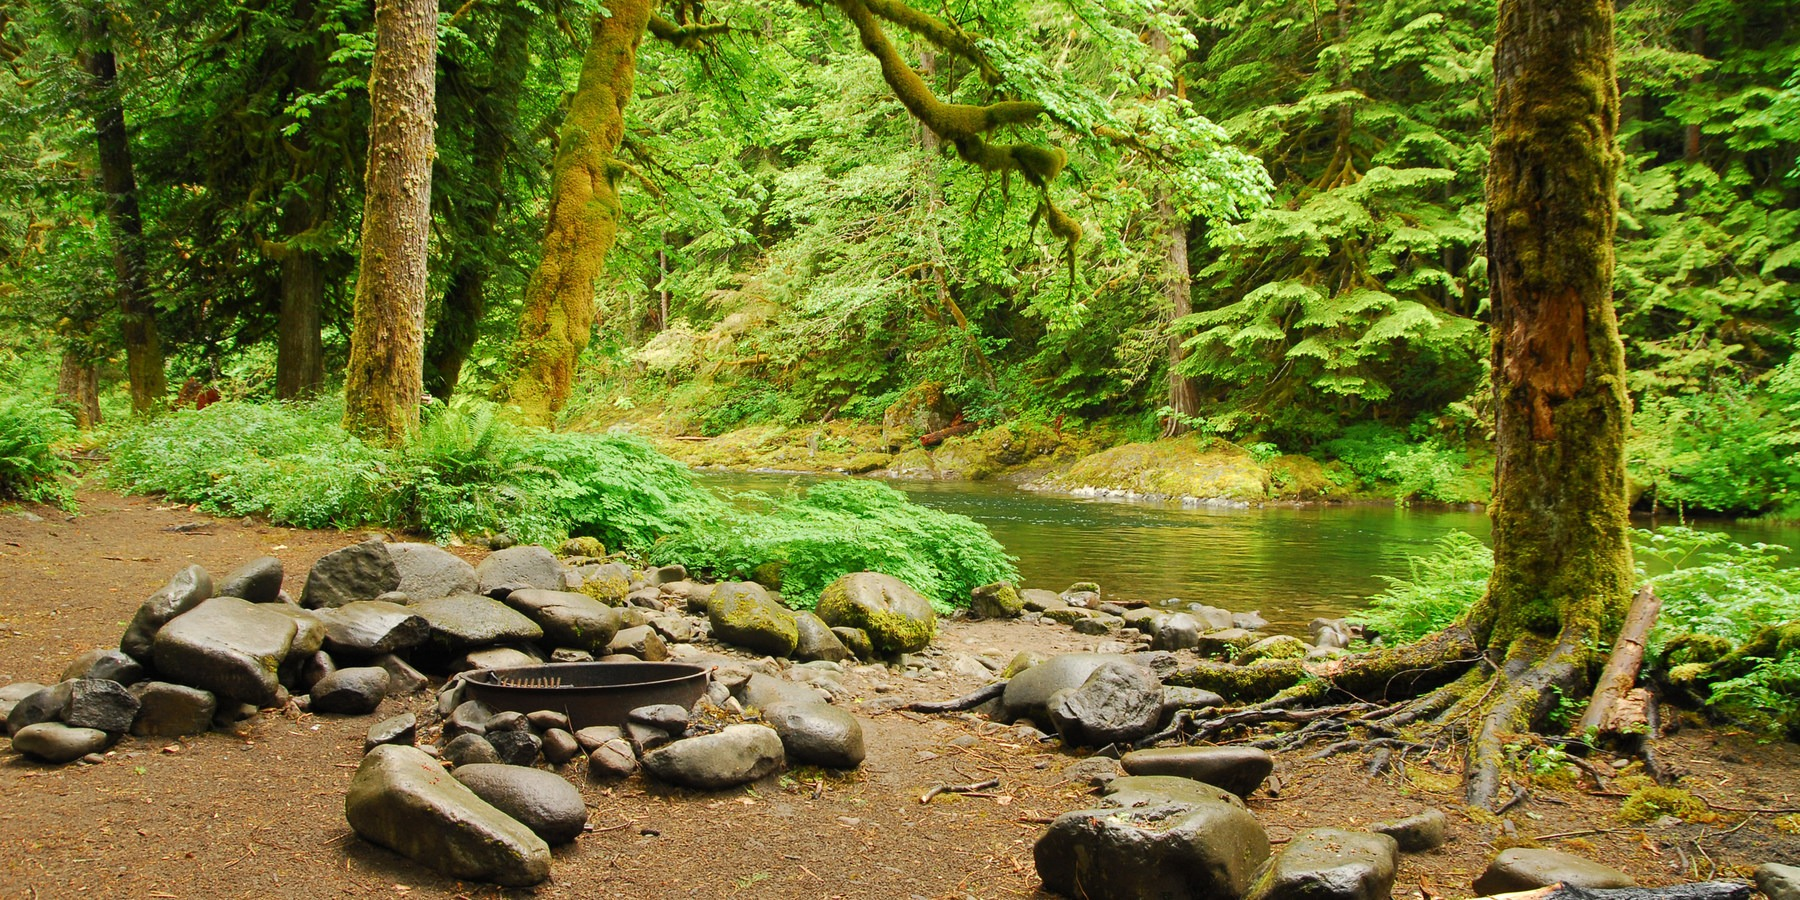 Escape to mount hoods 17 best campgrounds outdoor project backcountry campsite along the salmon river old trail escape to mount hoods 17 publicscrutiny Image collections